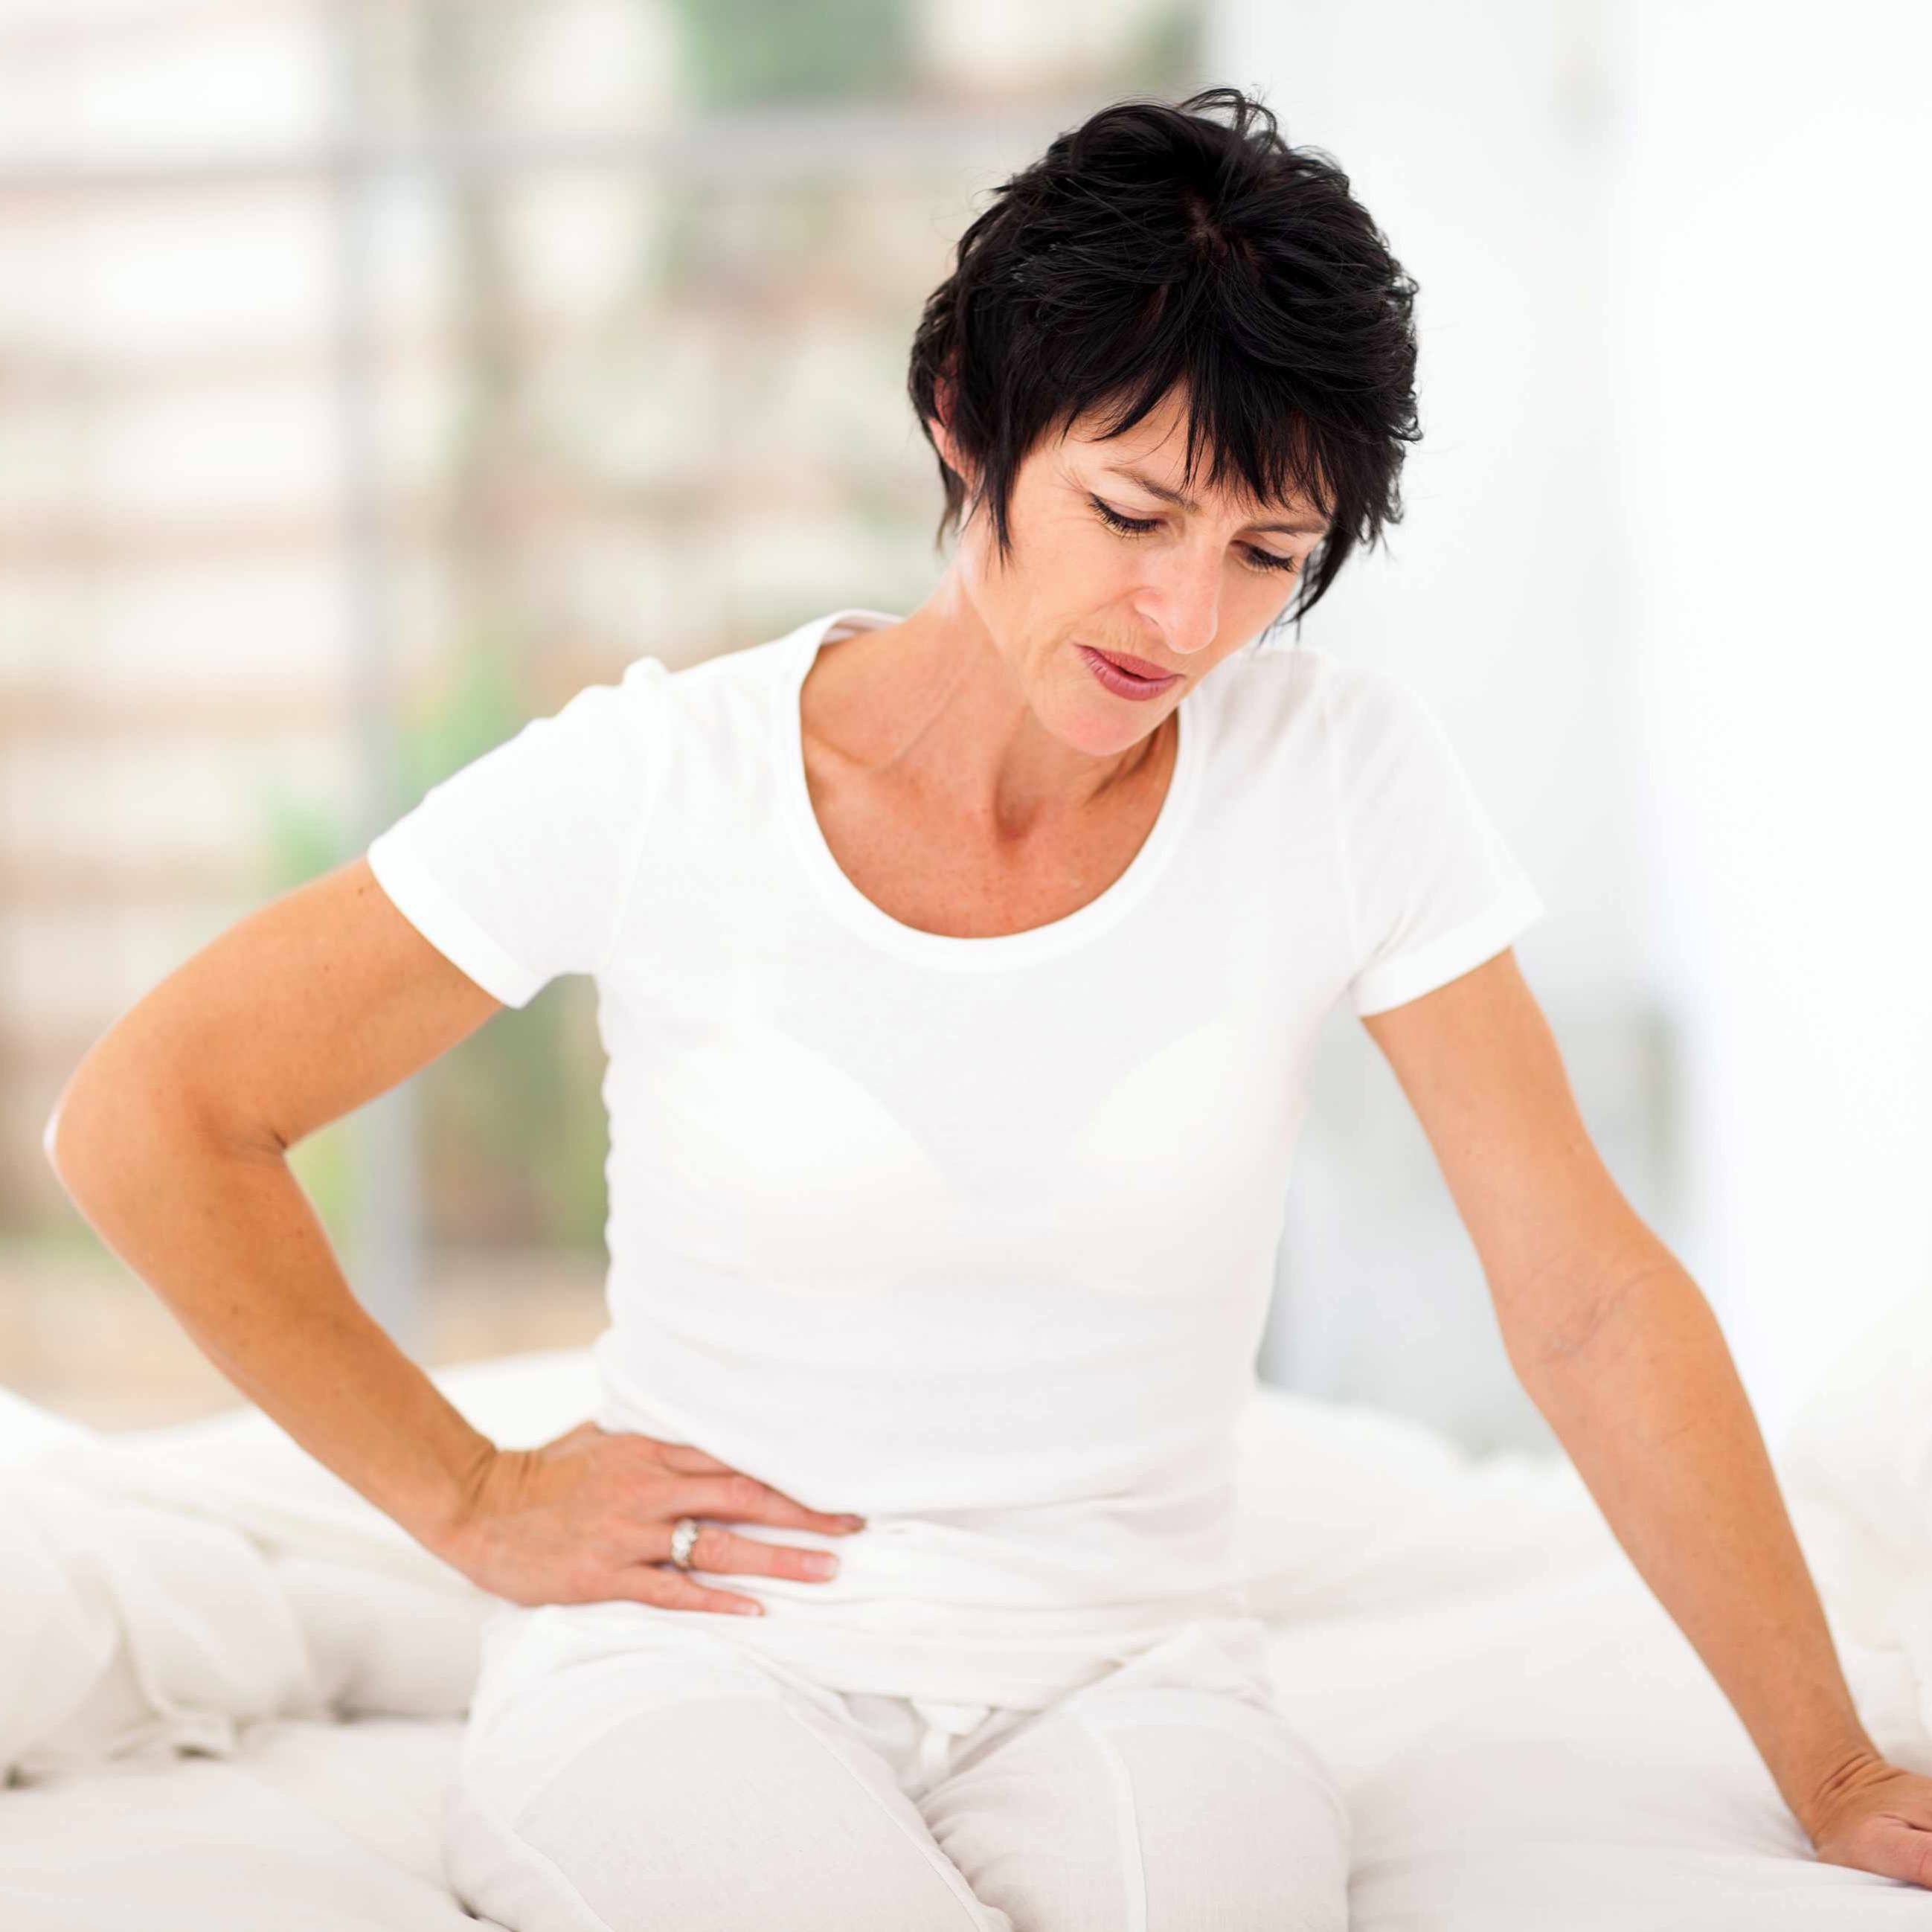 woman having stomach aches, cramps and pain - menstruation